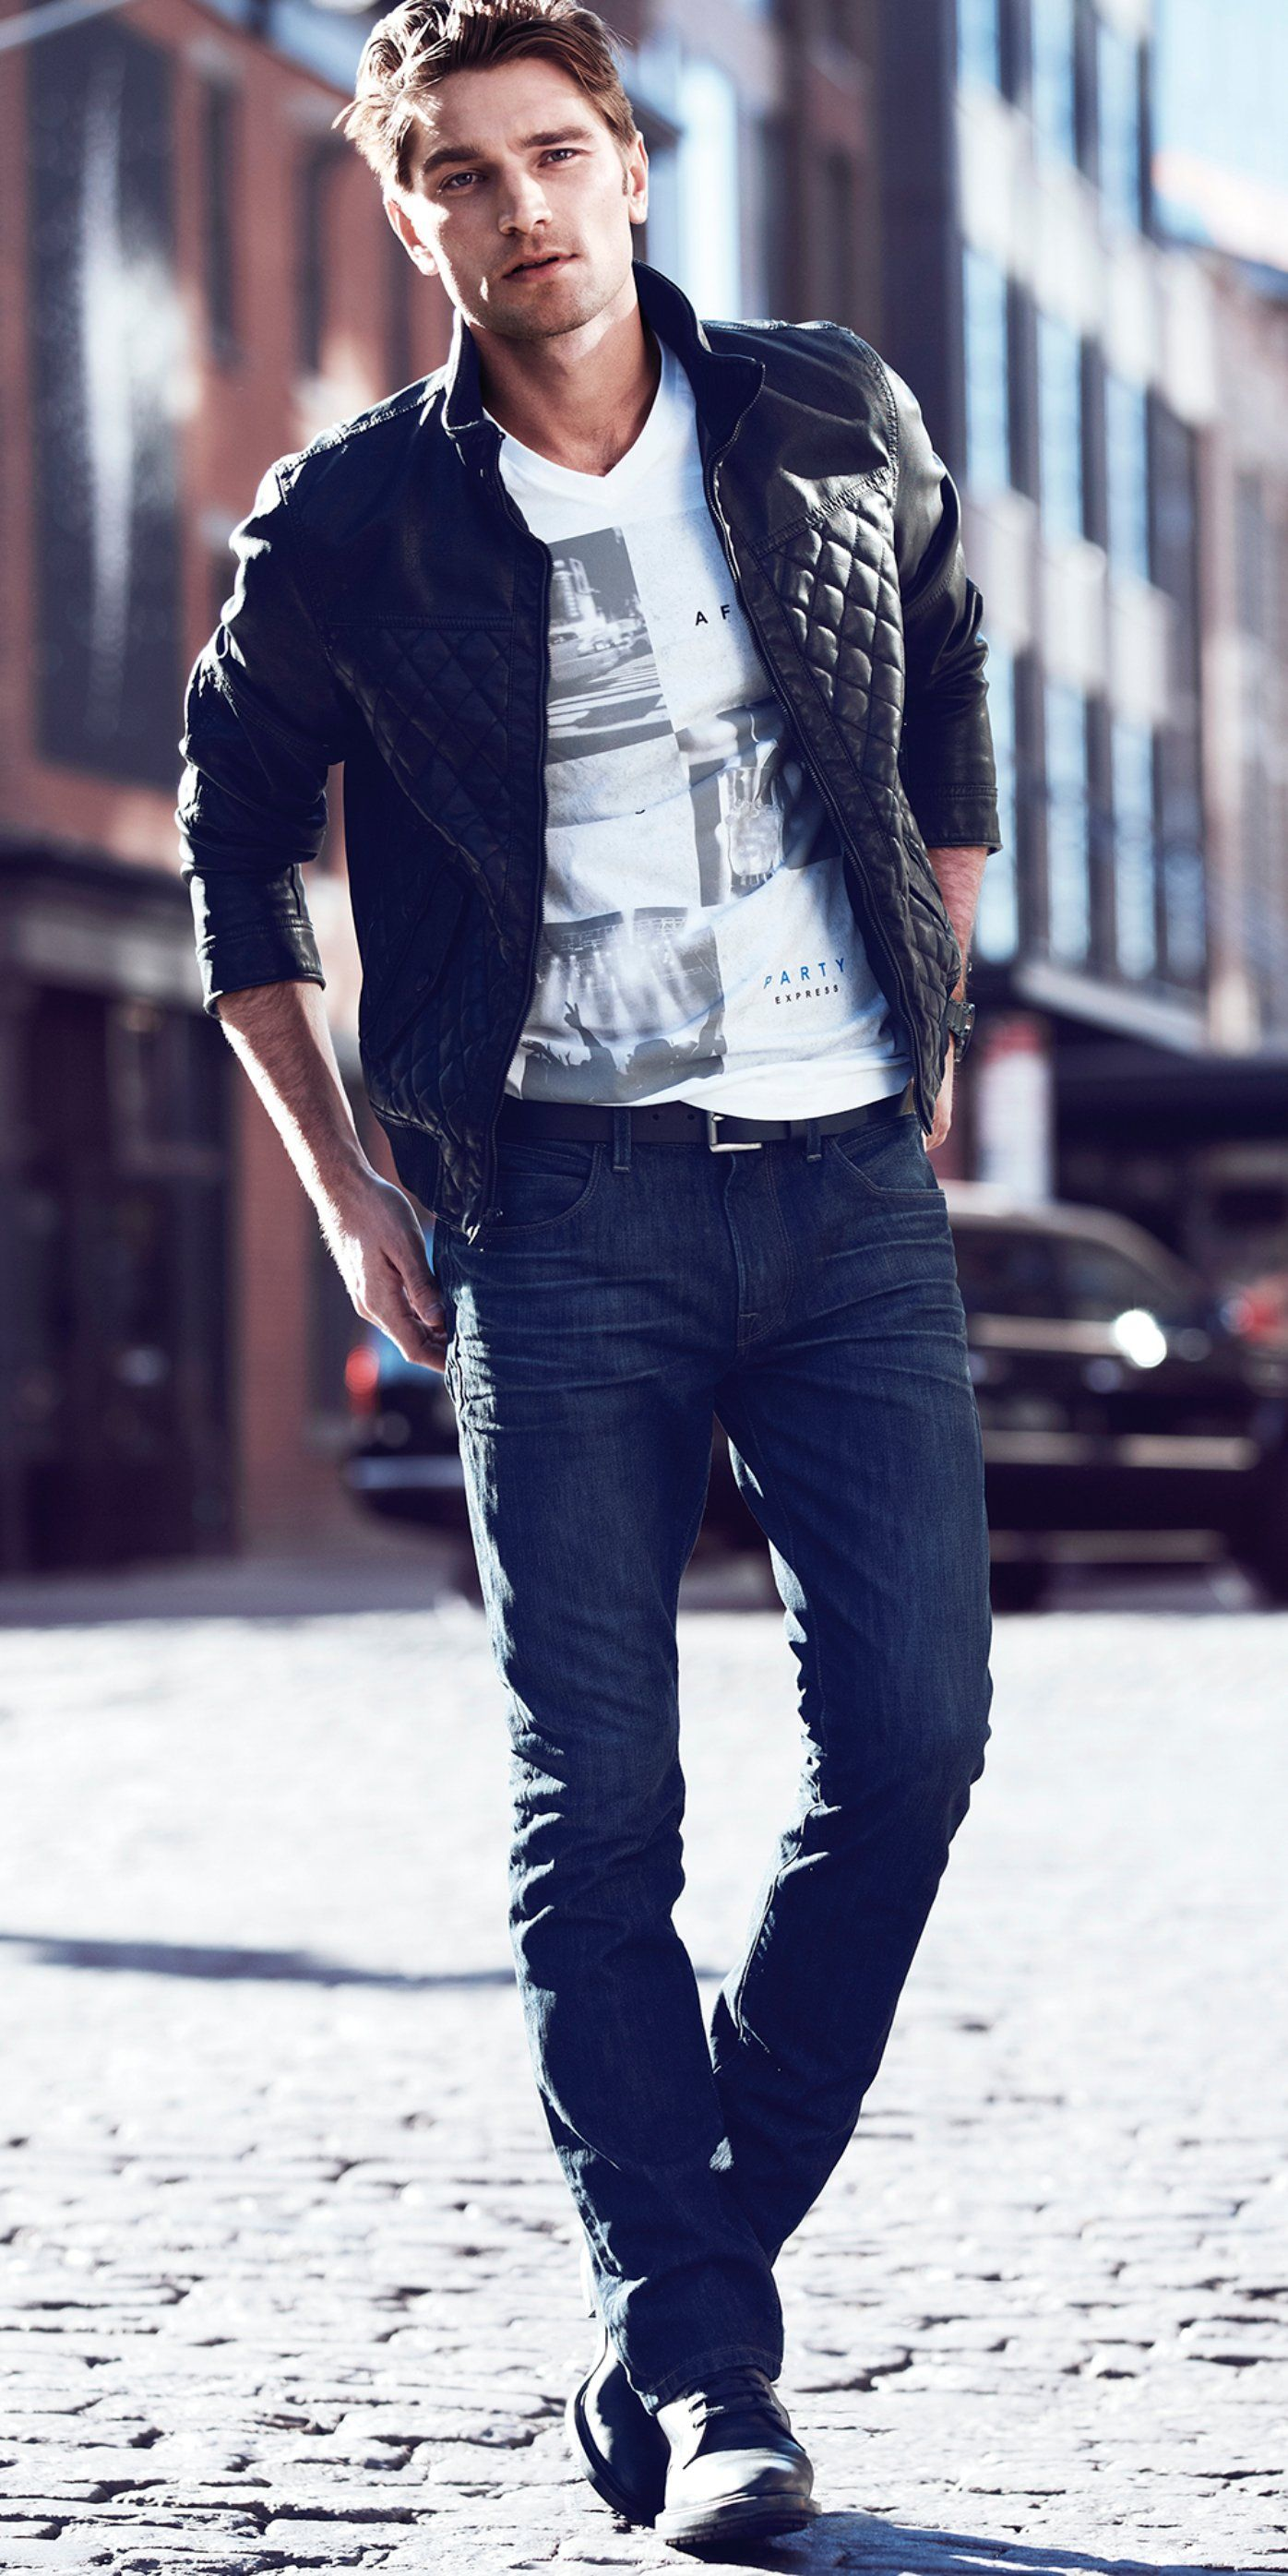 Quilted Bomber Jacket and Rocco Jeans. #express #mensfashion